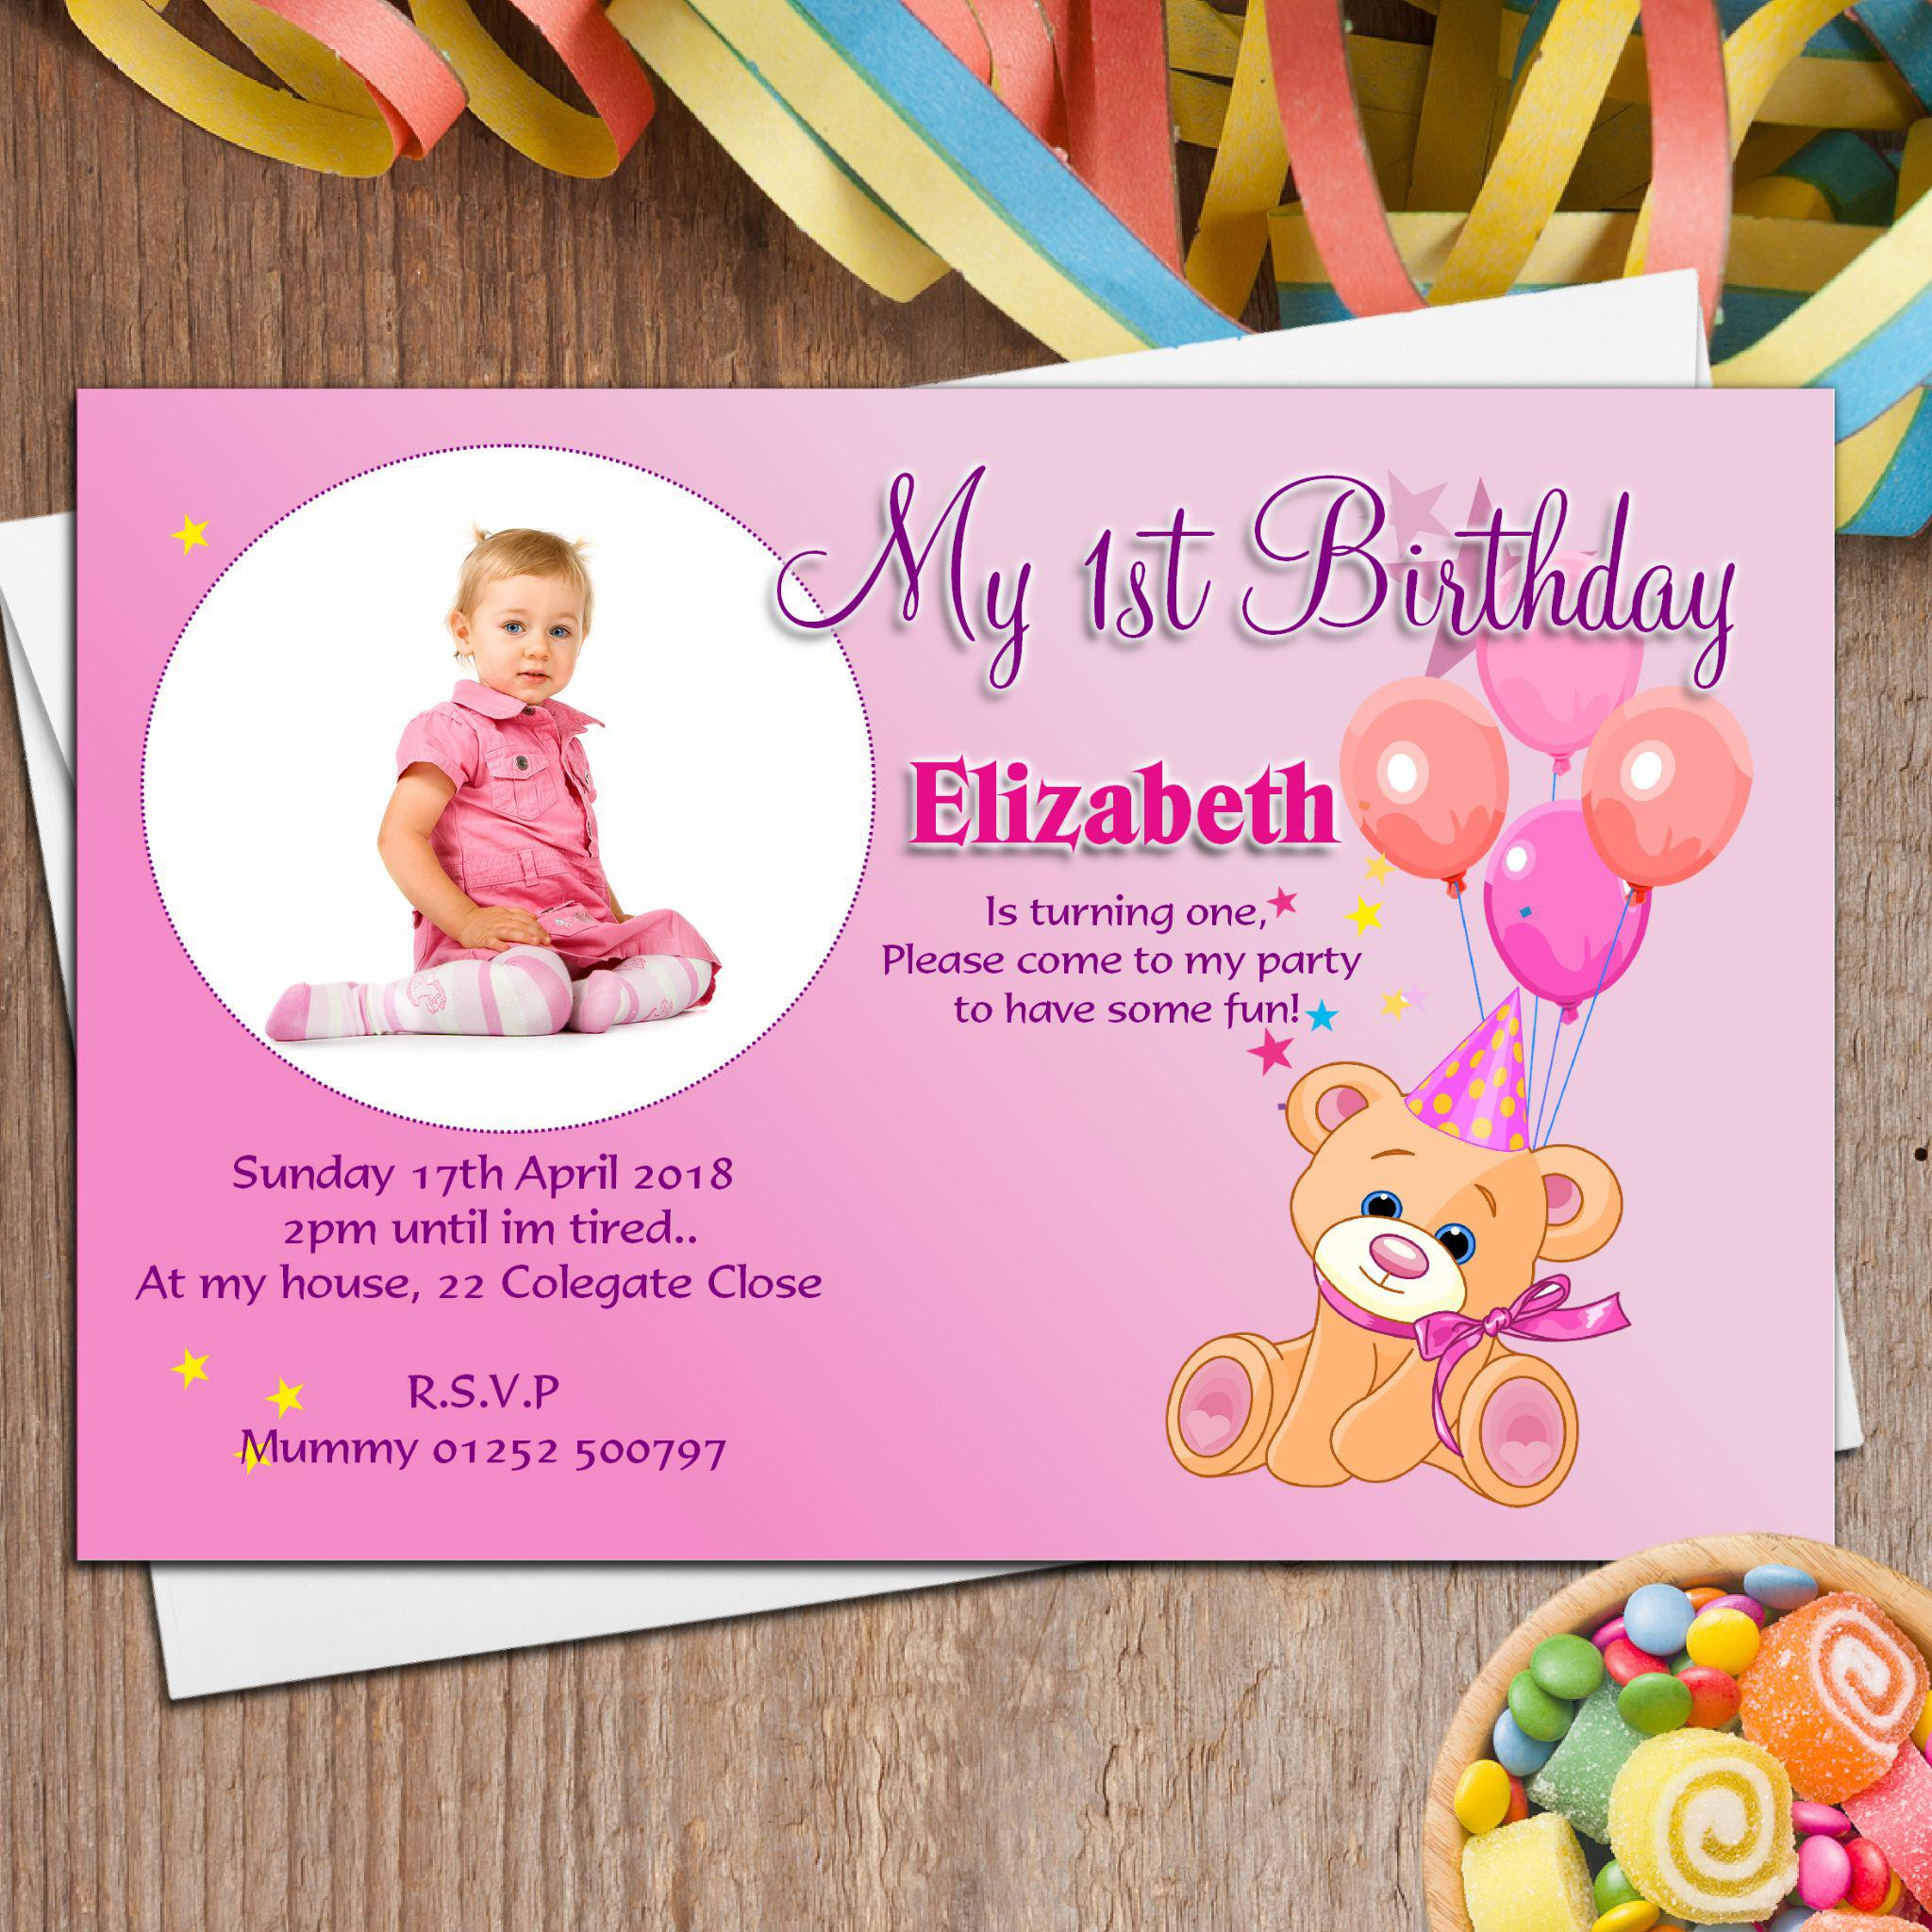 Birthday Invitations Cards Sample Wording Printable